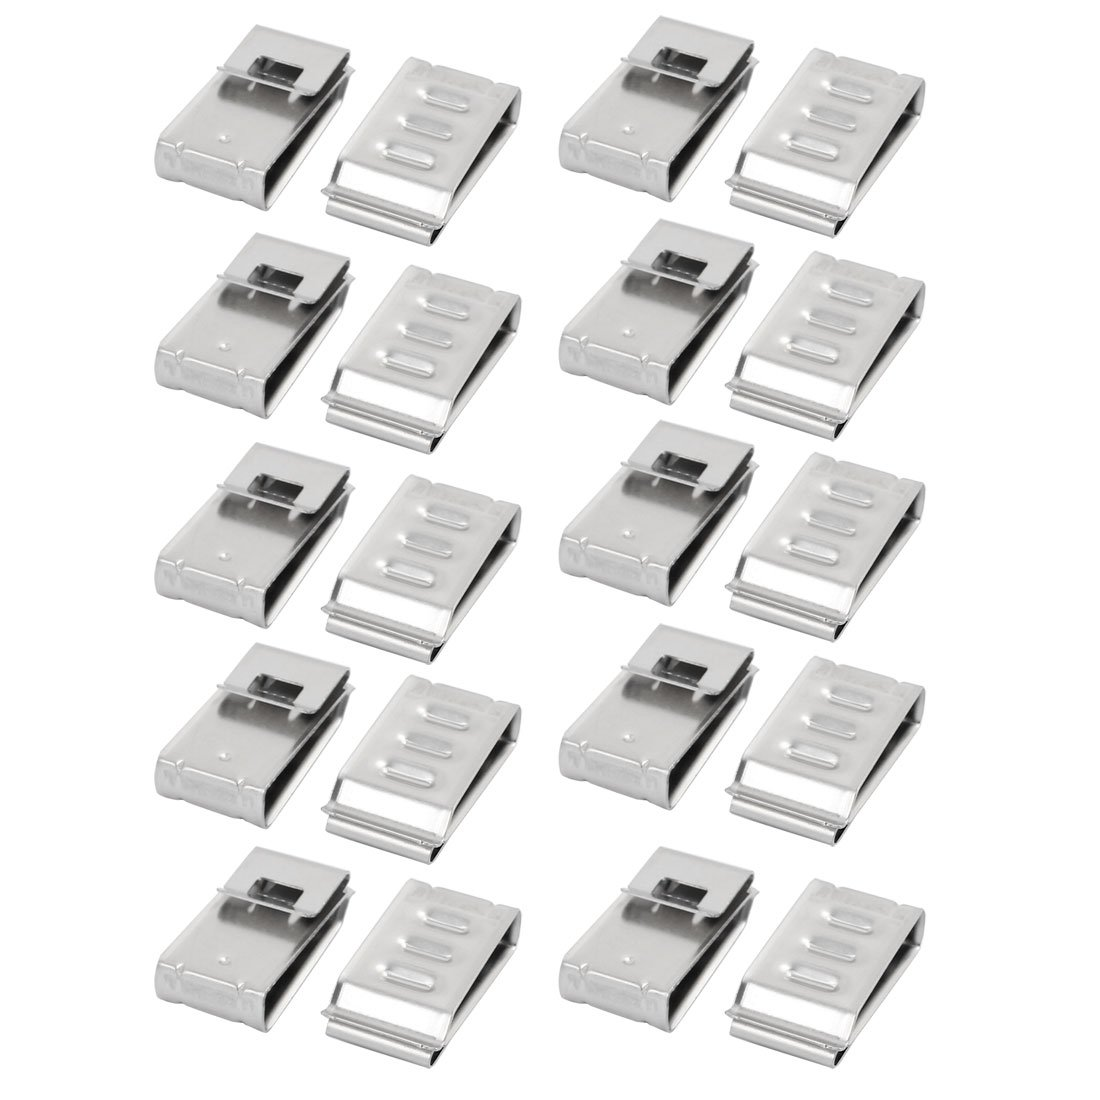 uxcell 20Pcs Solar Mounting Stainless Steel Flat Cable Clamp Fit for 4 x 5mm Dia Cable